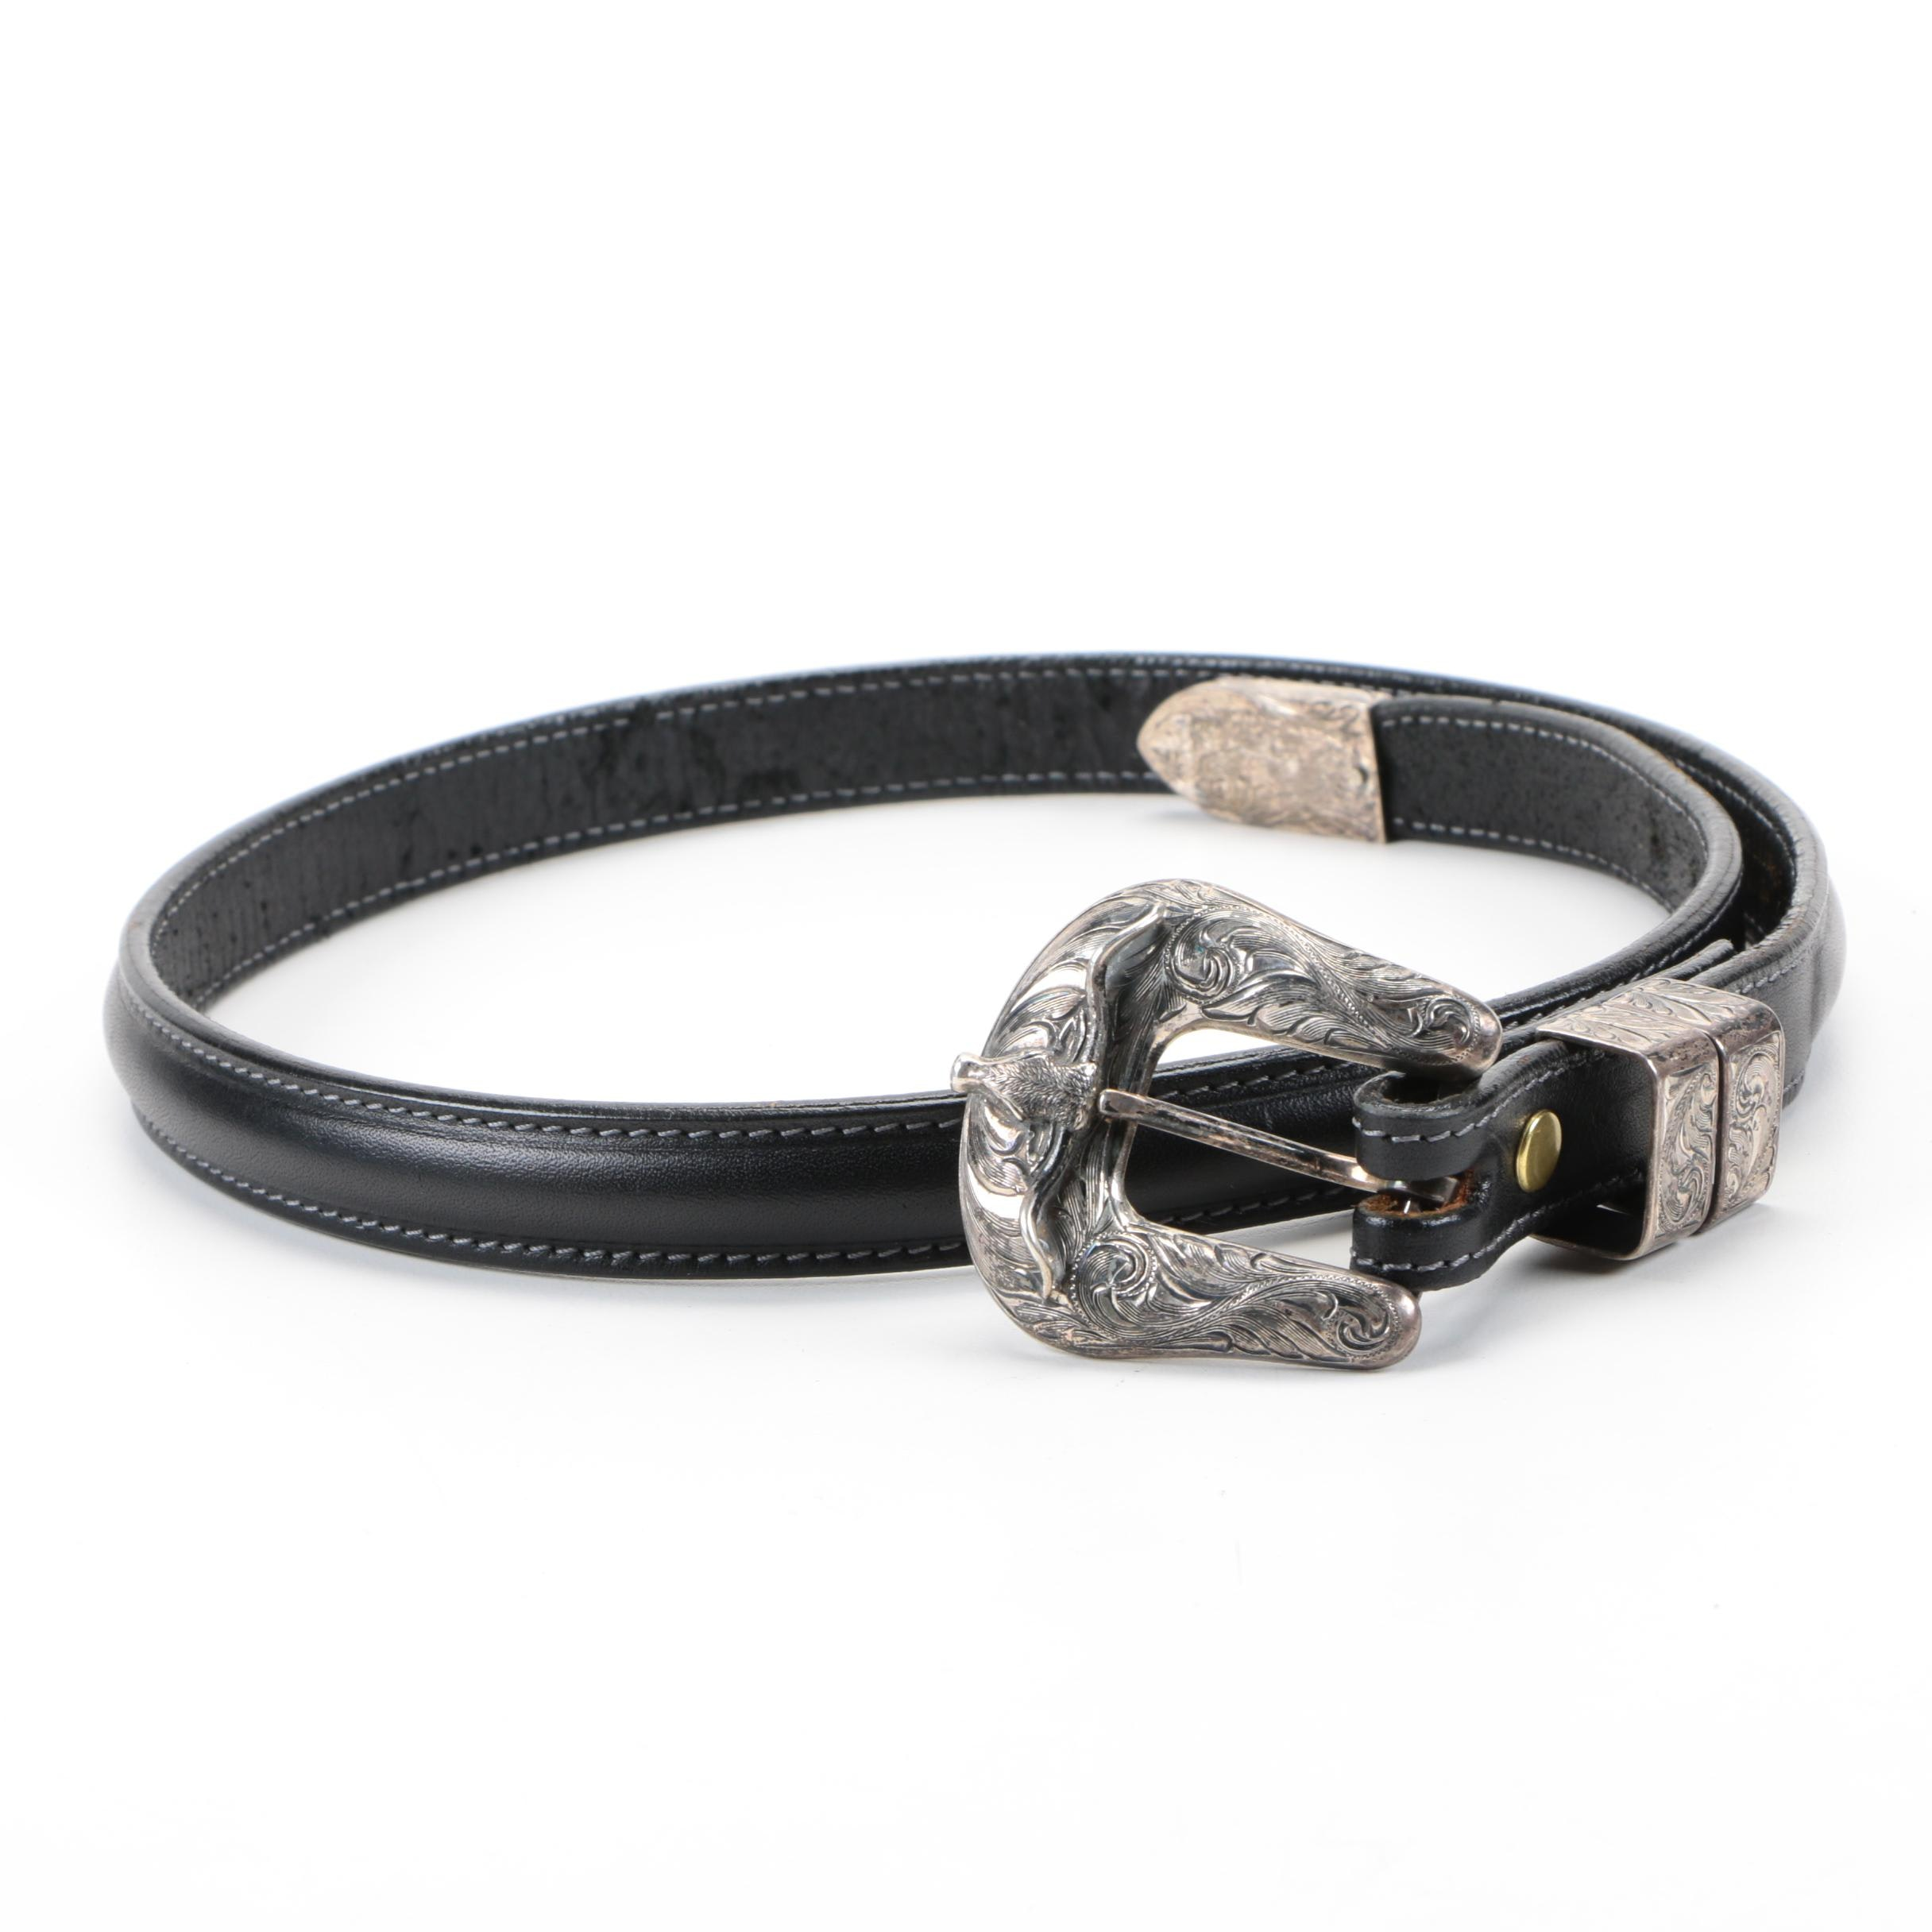 Chit Vogt Sterling Silver and Leather Belt